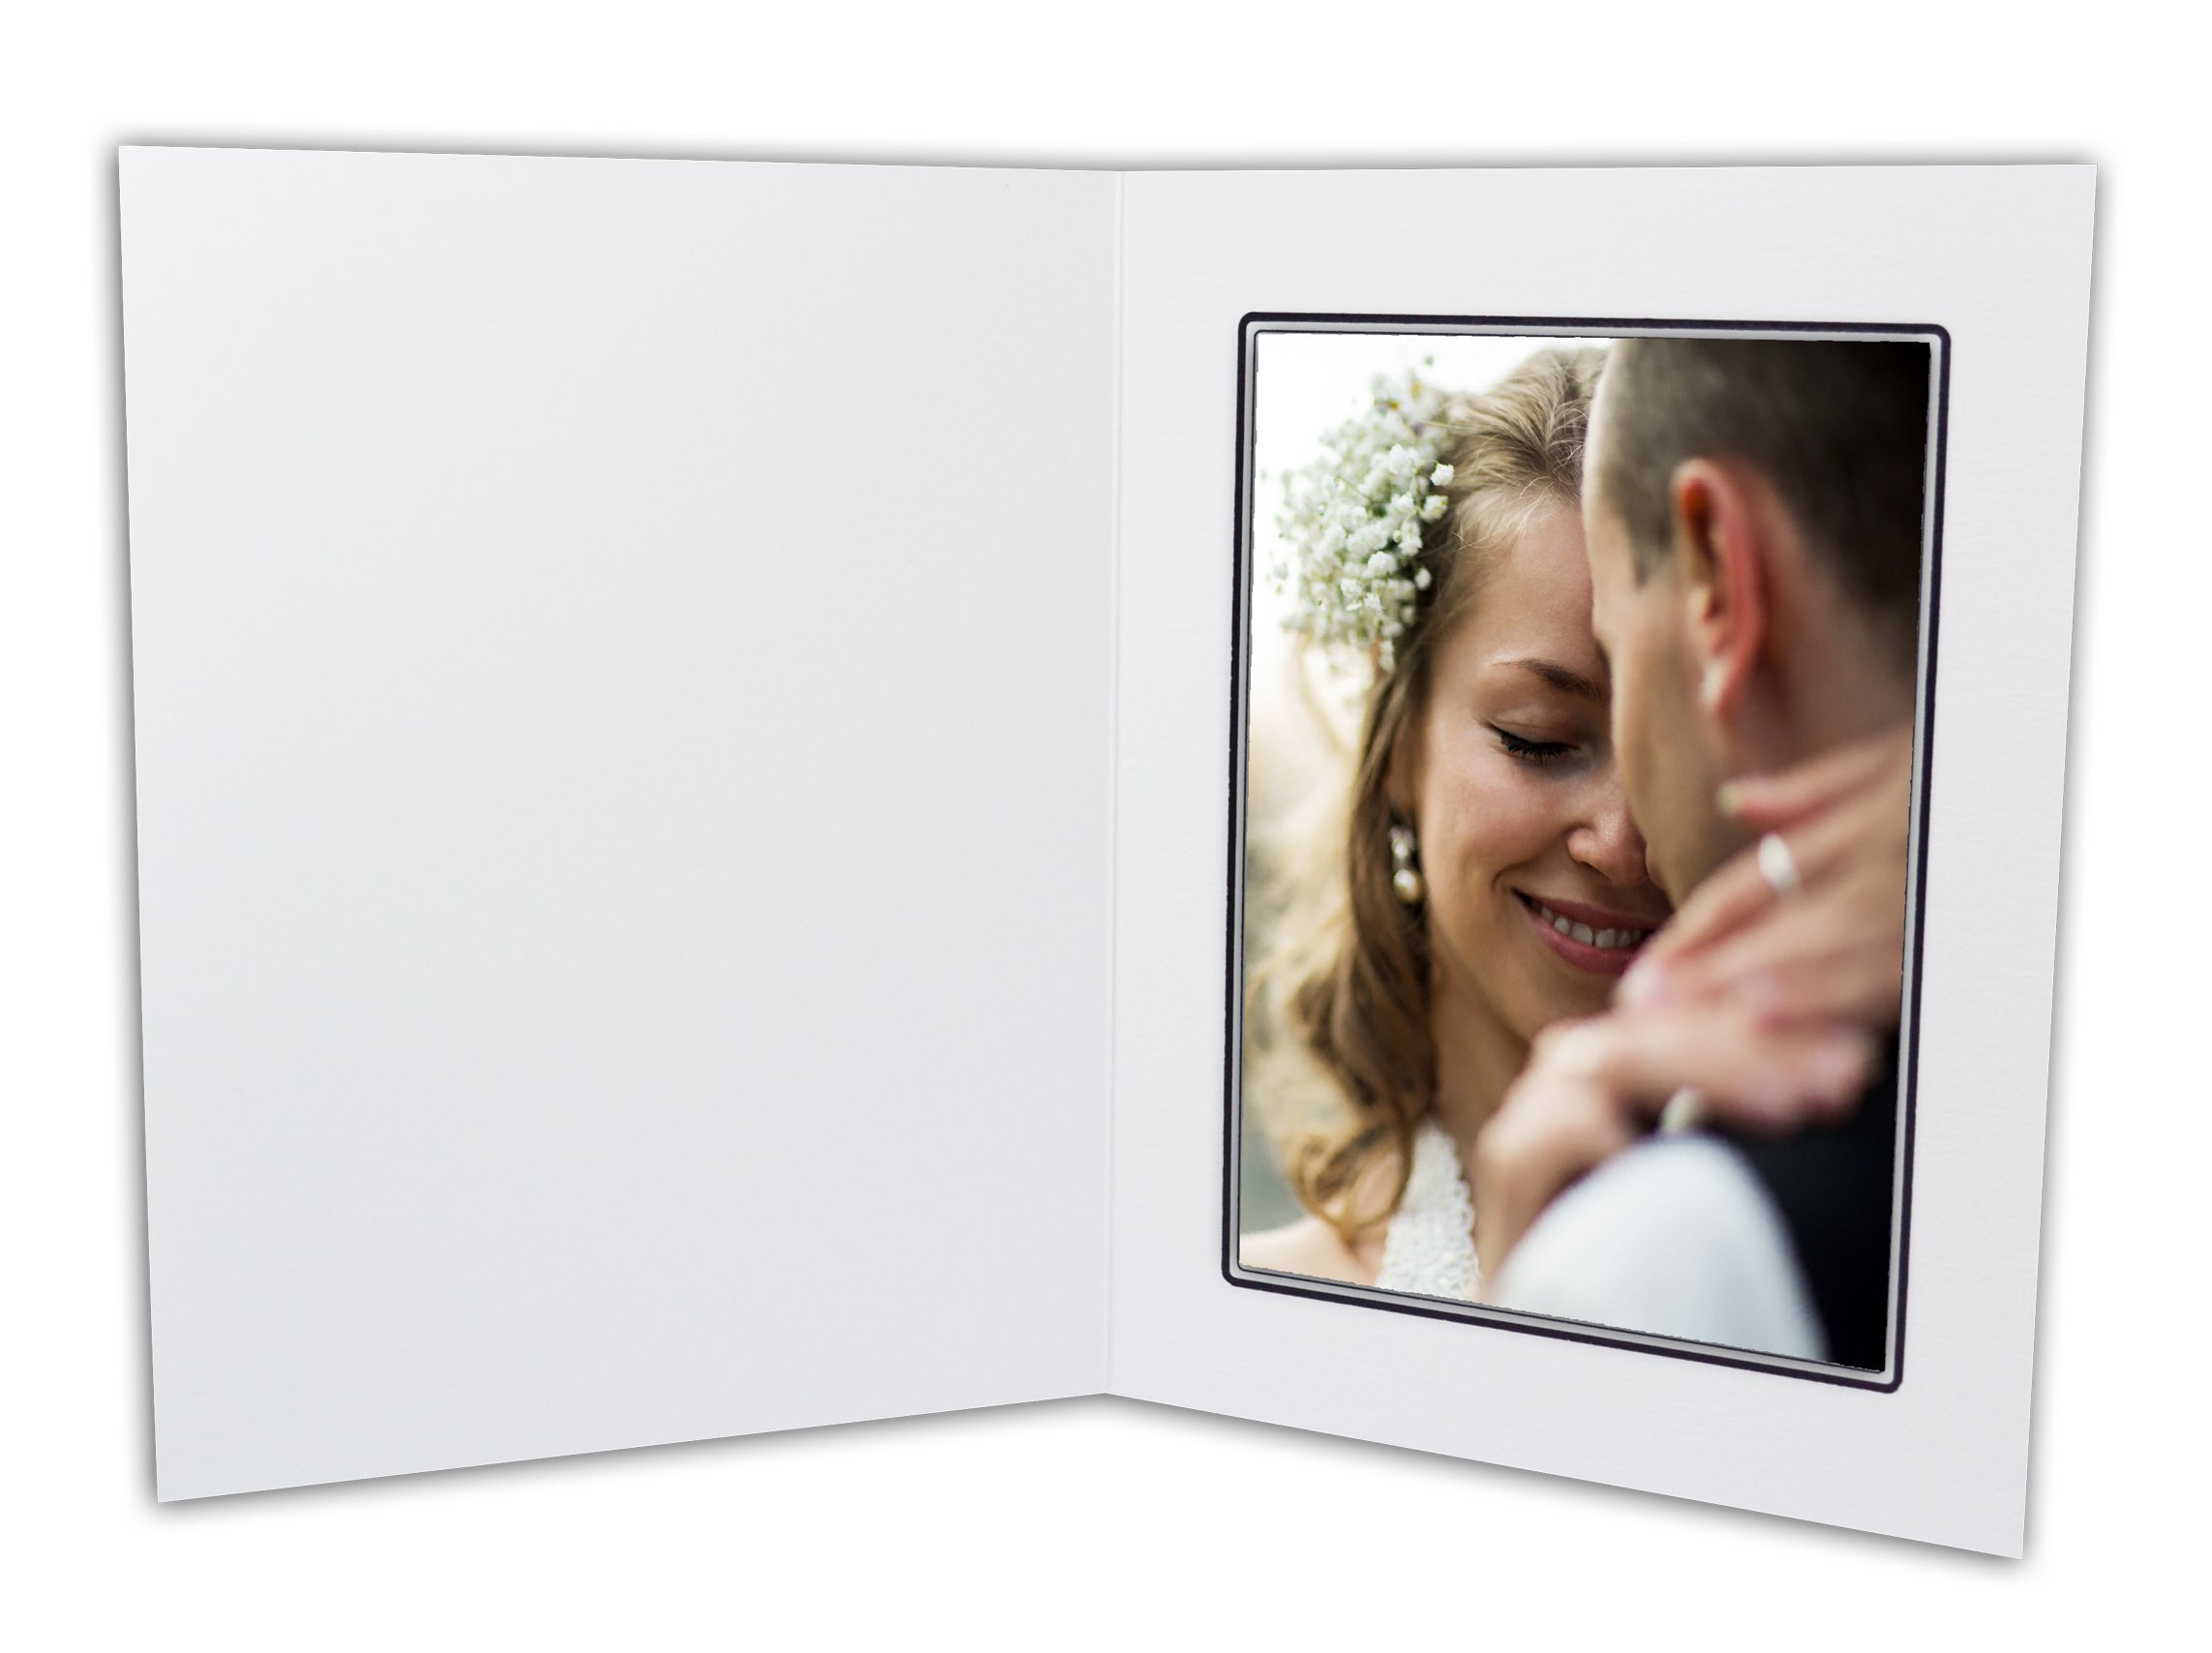 Golden State Art, Cardboard Photo Folder For a 5x7 Photo (Pack of 50) GS001 White Color